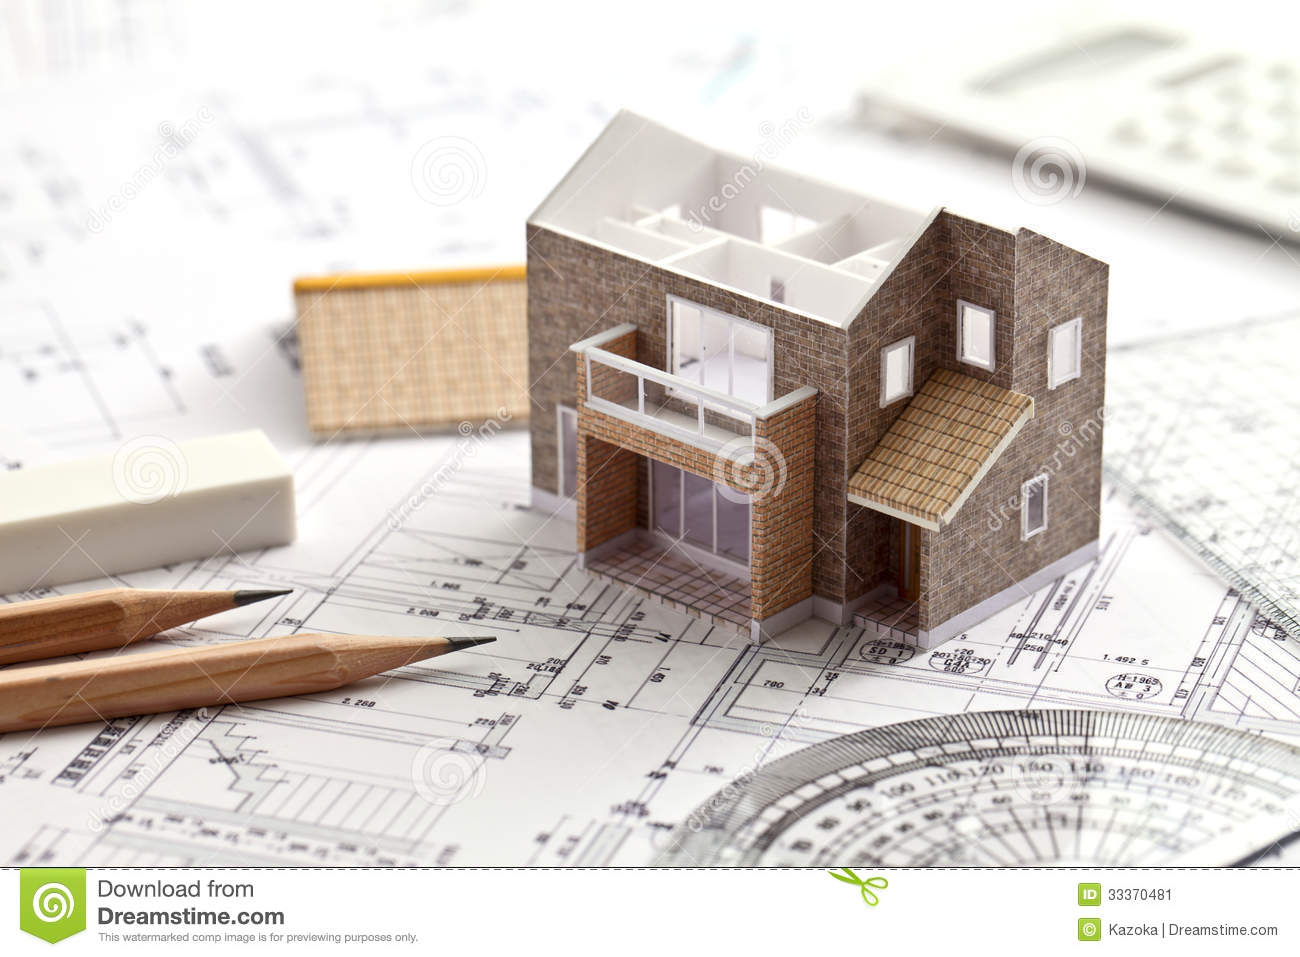 House design drawing stock image image 33370481 - When to start building a house ...